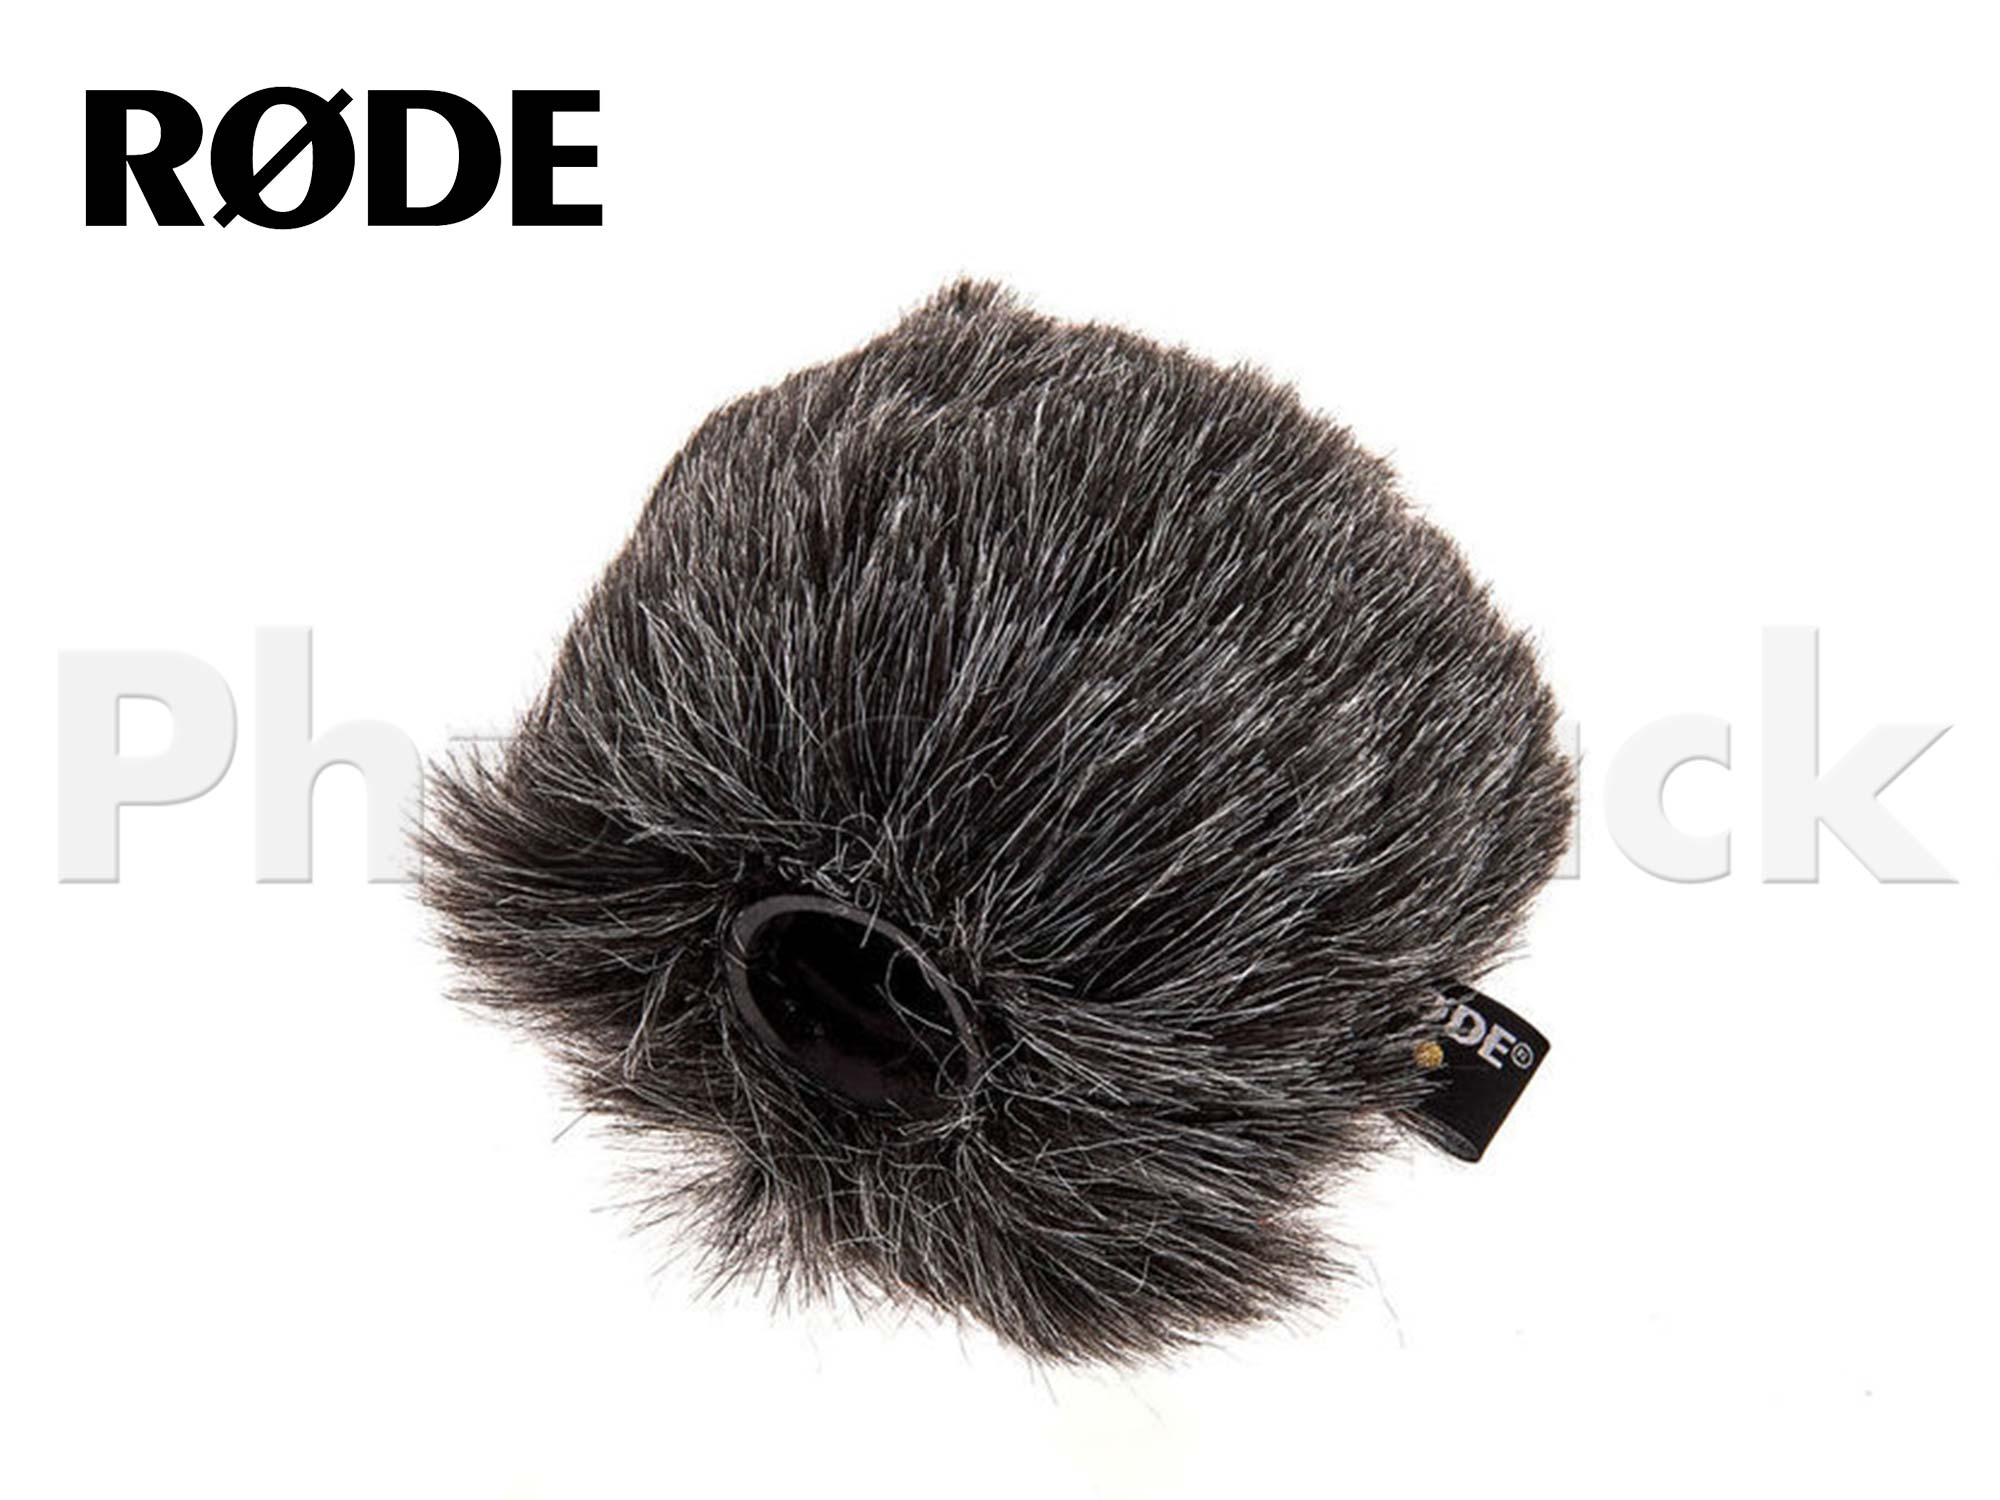 Rode WS9 Deluxe Microphone Windshield for RØDE VideoMicro and VideoMic Me